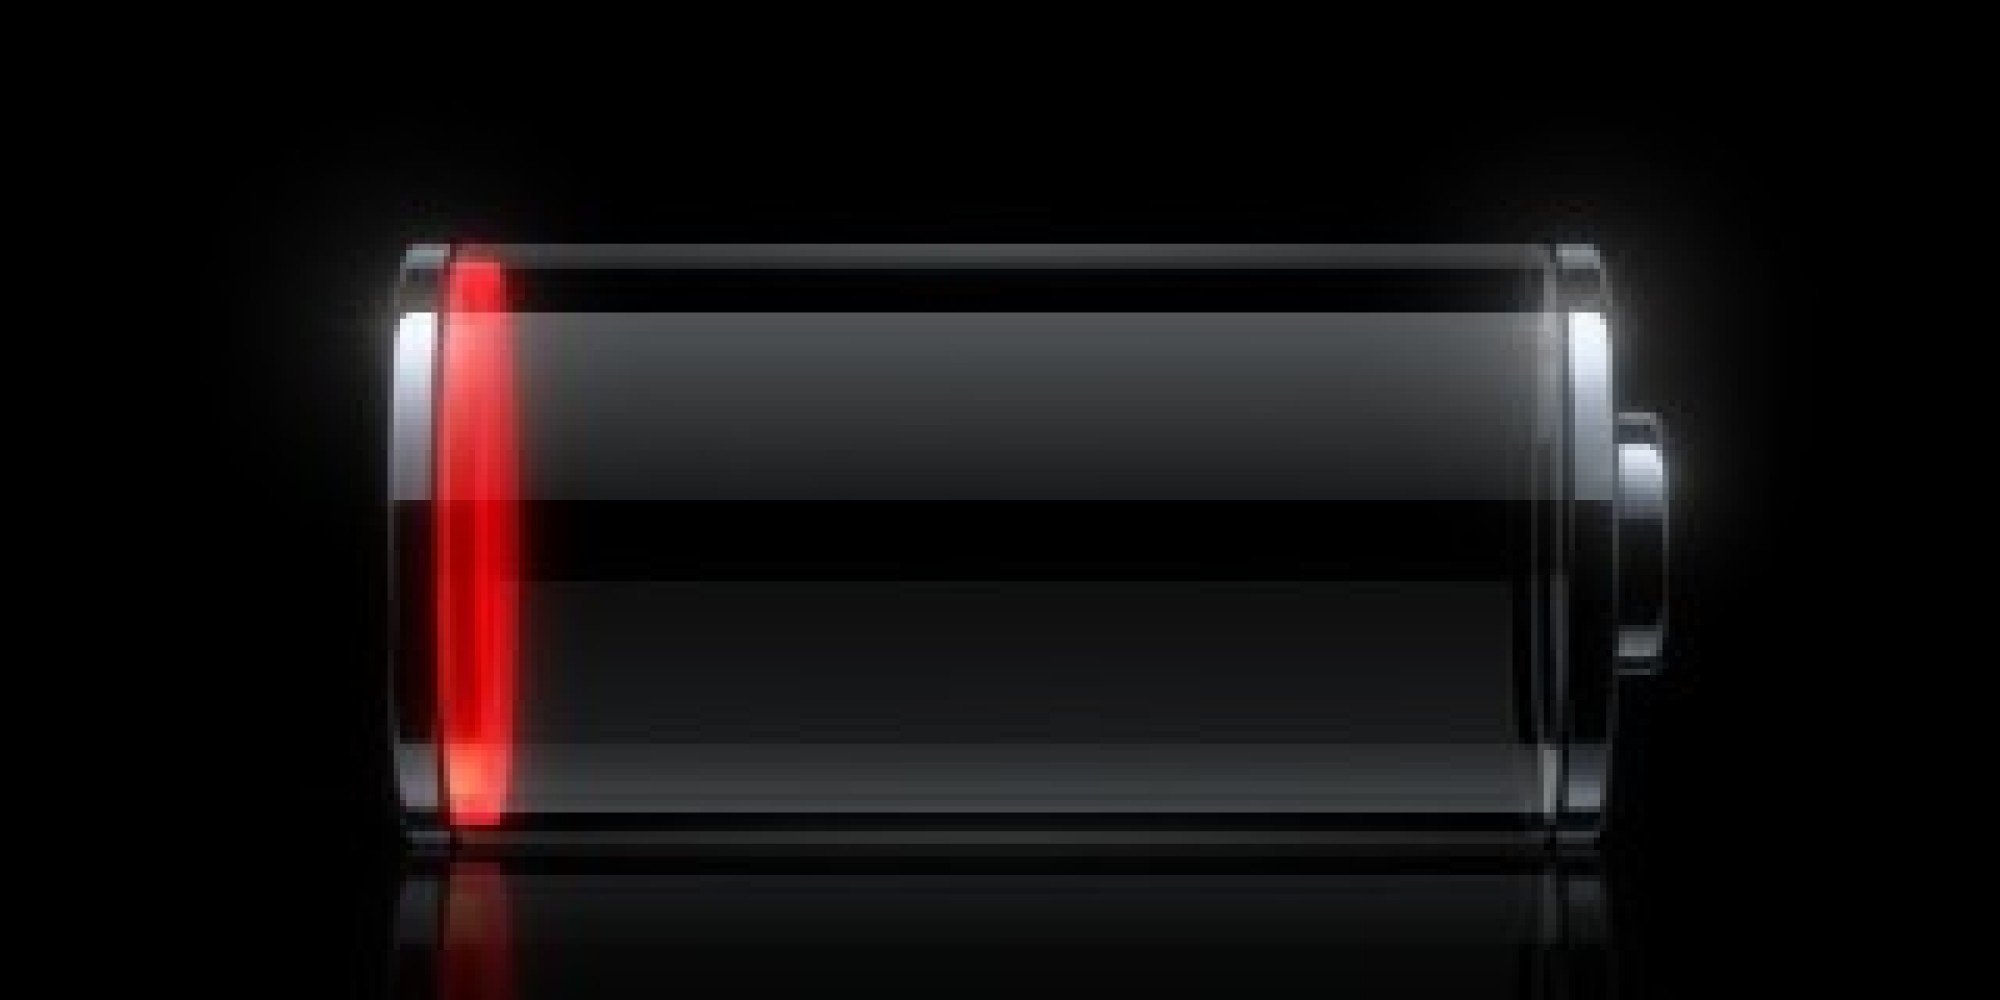 o-IPHONE-BATTERY-LIFE-facebook